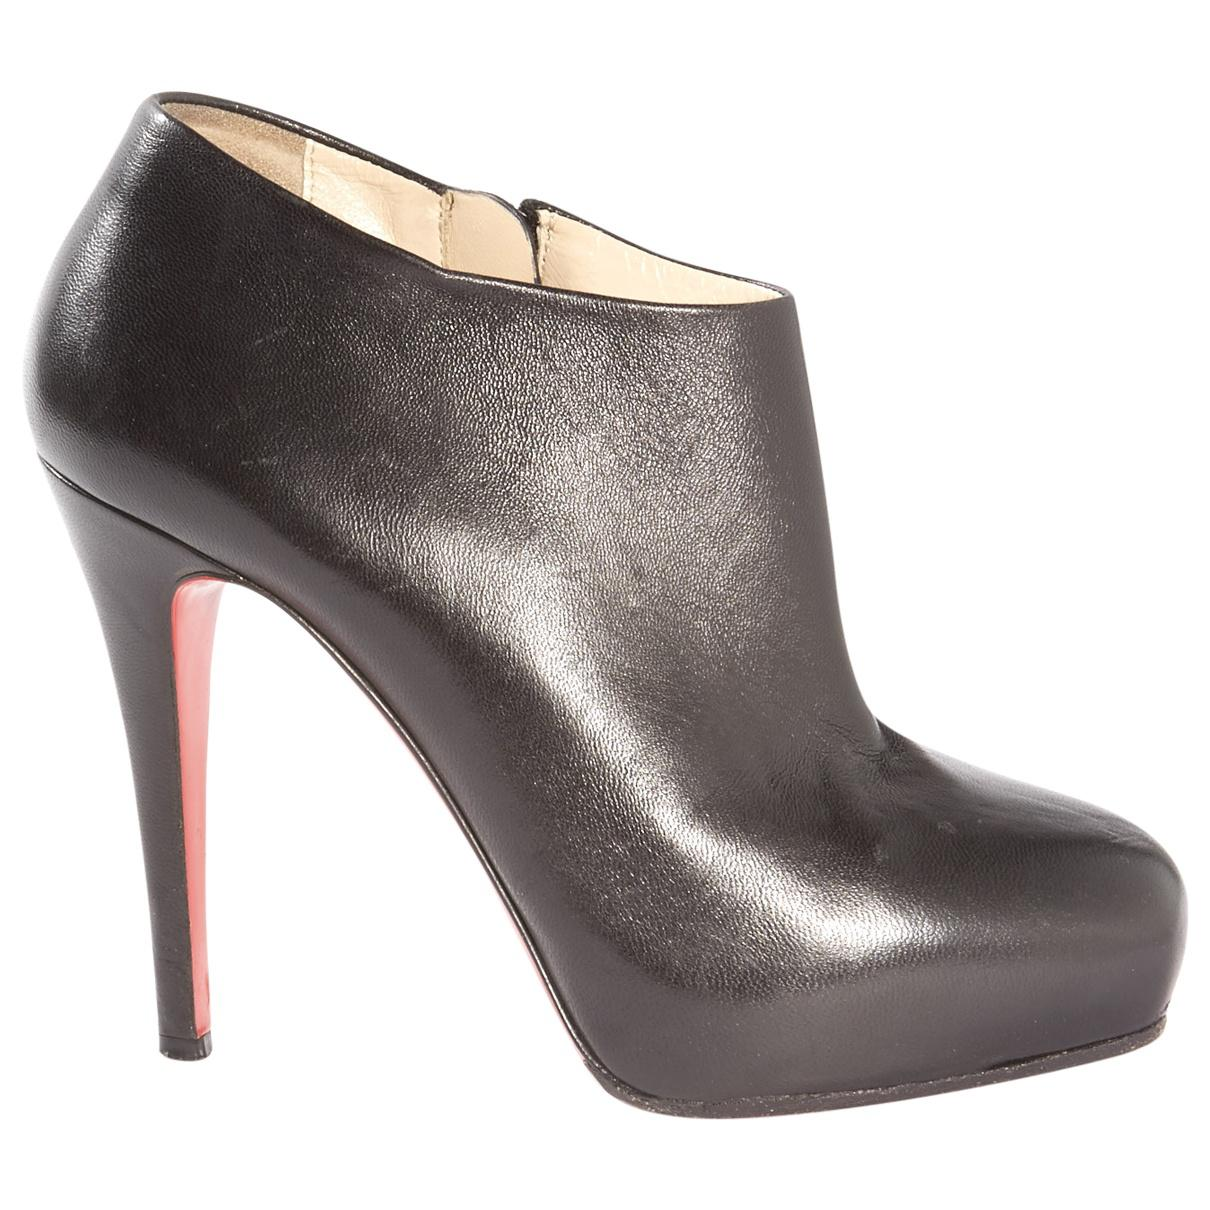 christian louboutin pre owned leather ankle boots in black